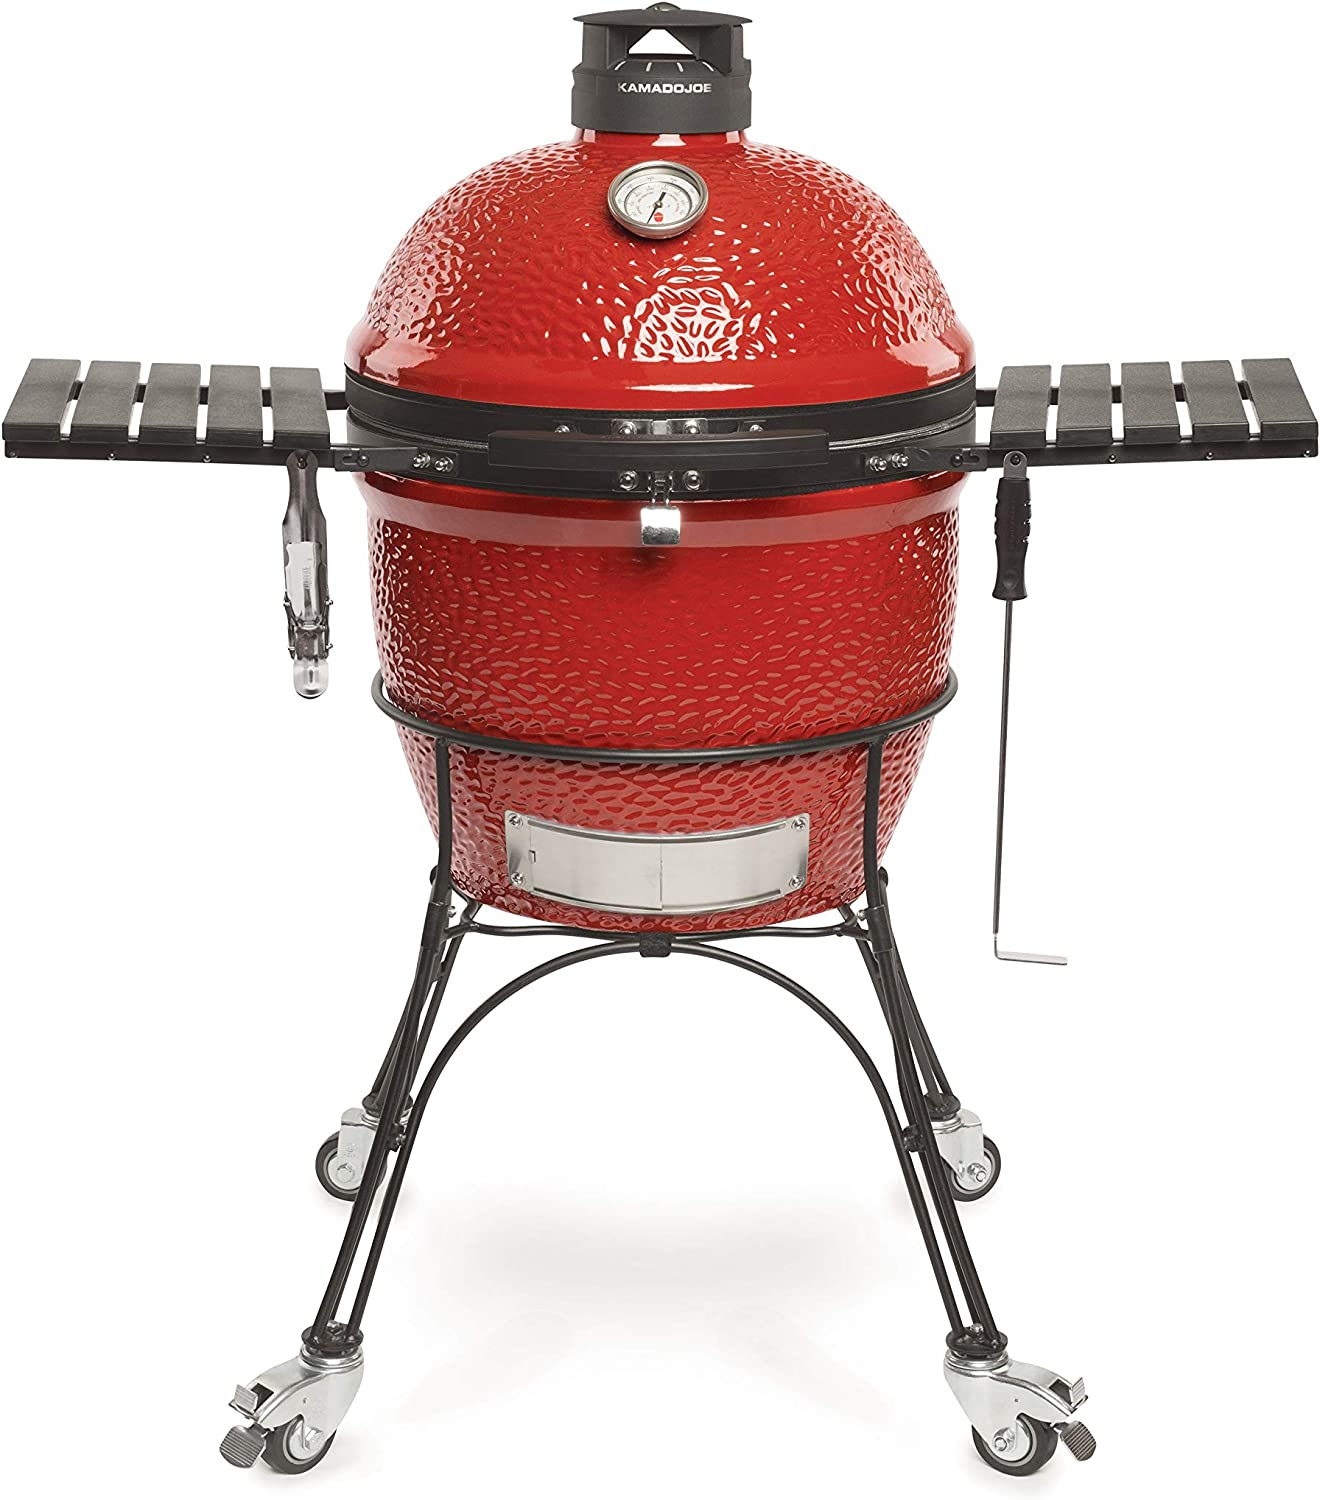 Kamado Joe Classic II Charcoal Grill review